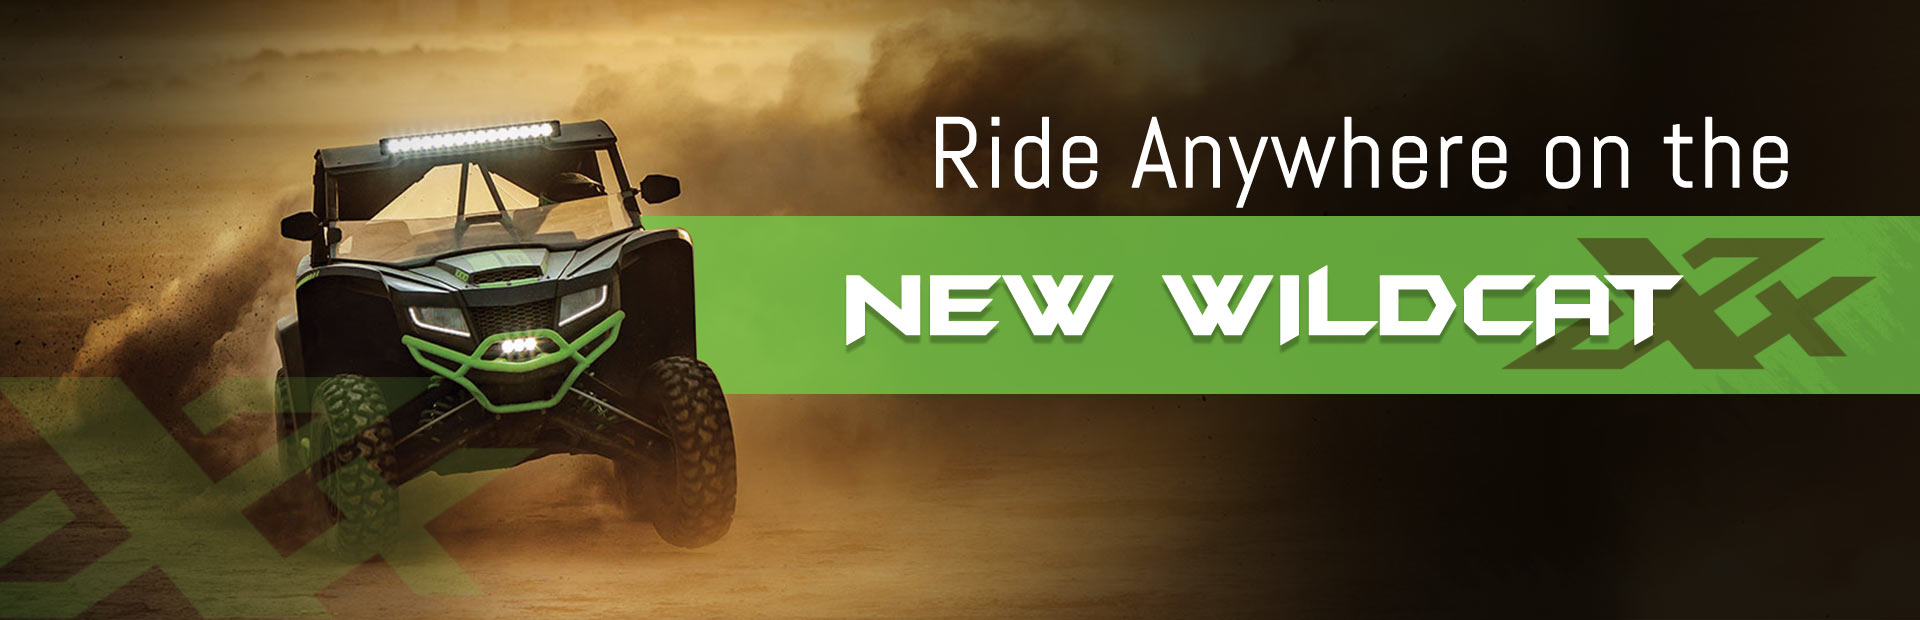 Ride anywhere on the new Wildcat XX!